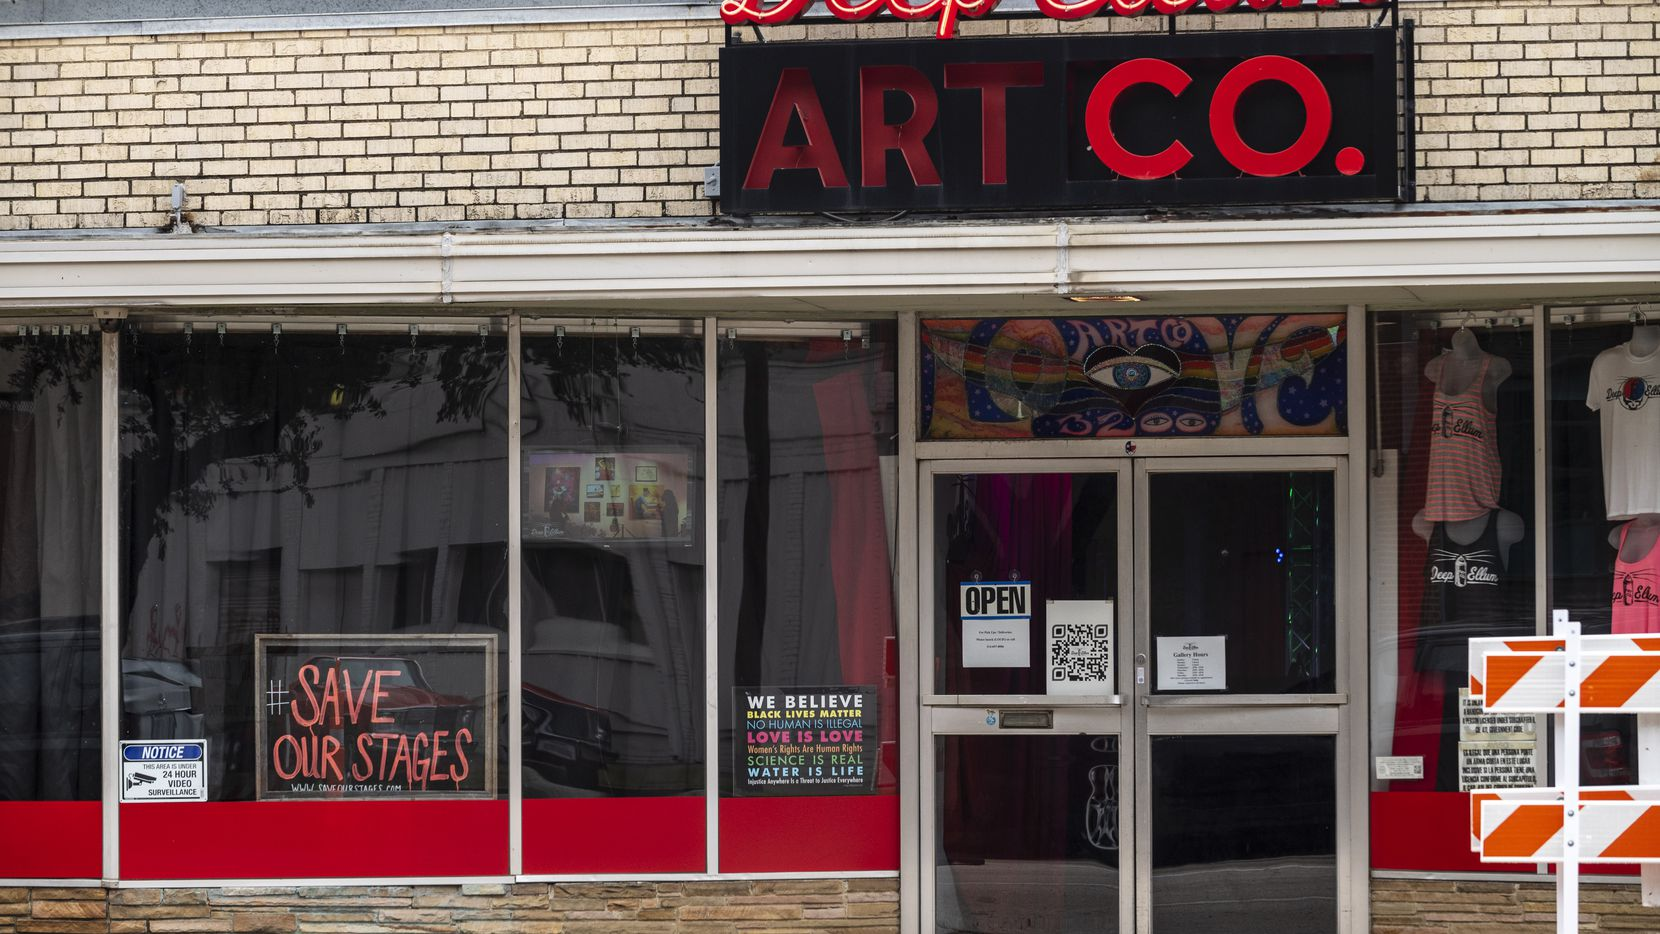 Deep Ellum Art Co. is one of a number of Dallas venues that will continue to require masks after restrictions lift.